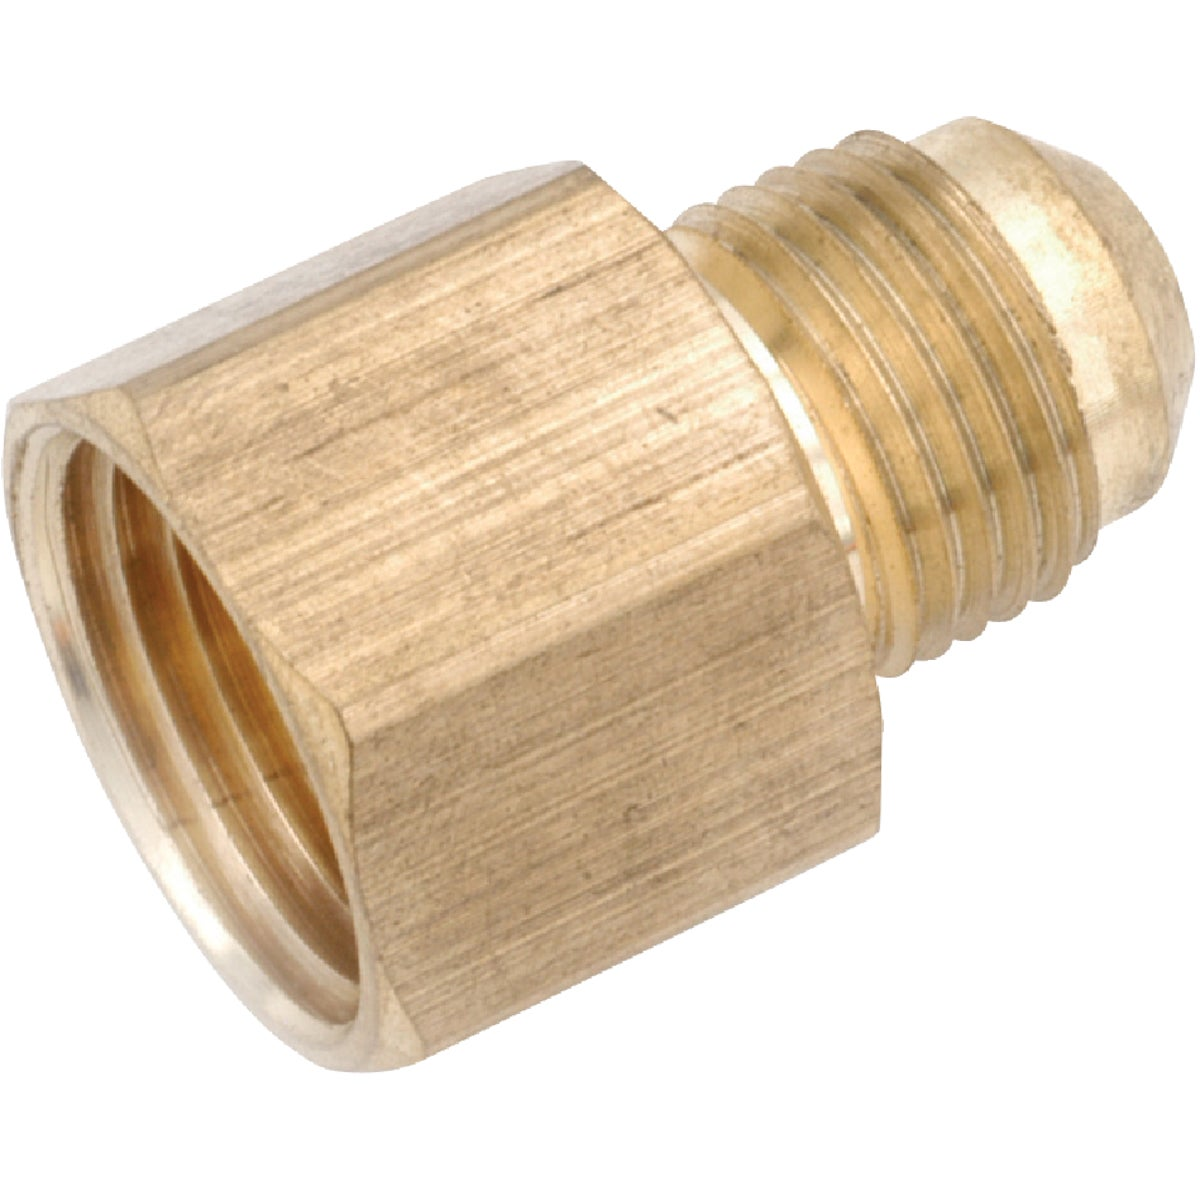 5/8X3/4 CONNECTOR - 754046-1012 by Anderson Metals Corp